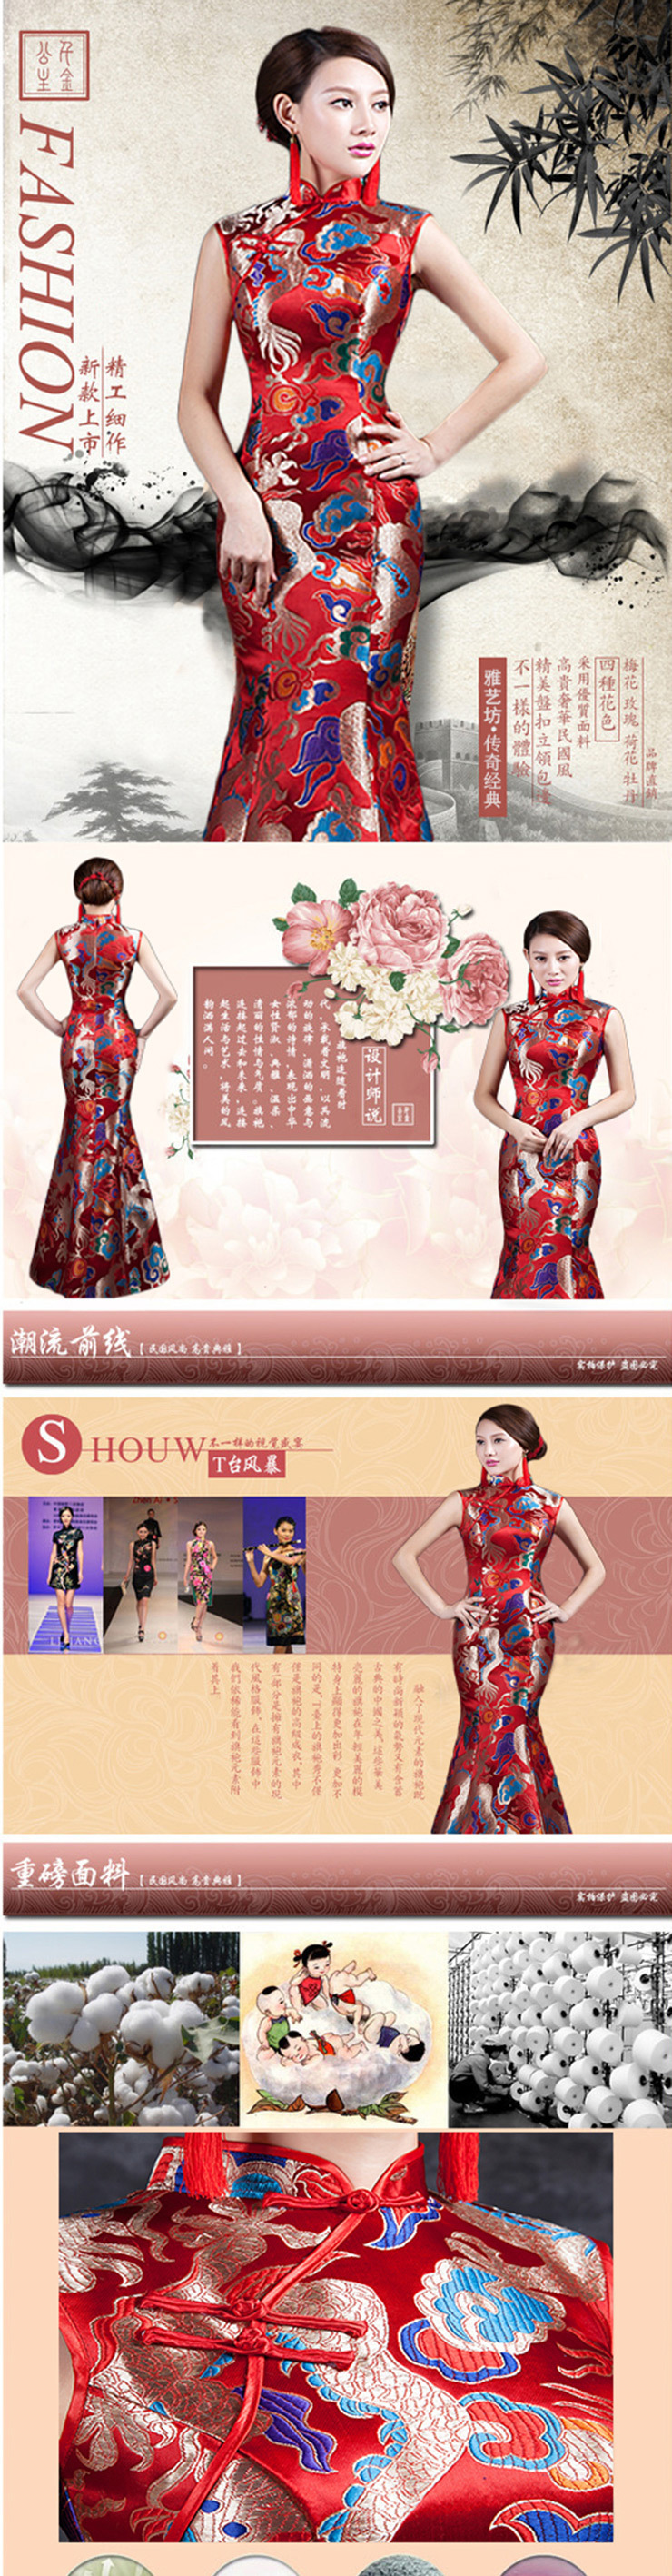 8713c3ad8c Traditional Chinese Dress Long Cheongsam Red Mermaid Evening Gown Sexy  Qipao Design Vestido Oriental Robe Chinoise Qi Pao -in Cheongsams from  Novelty ...